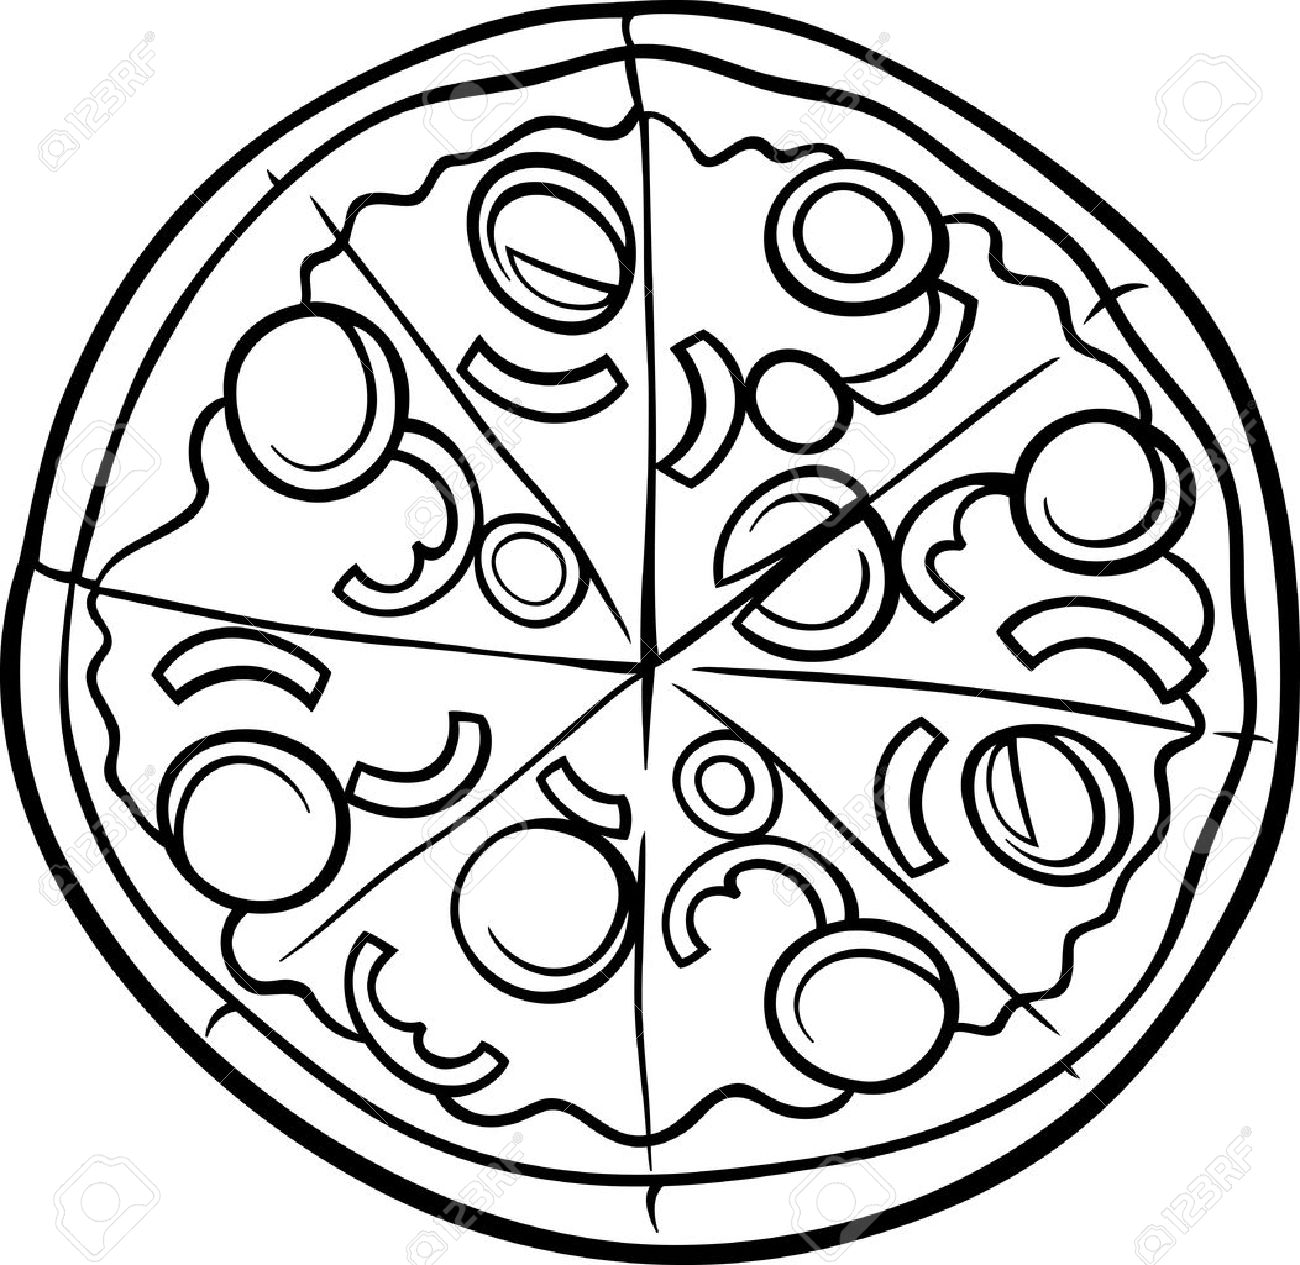 Pizza Drawing Black And White At Getdrawings